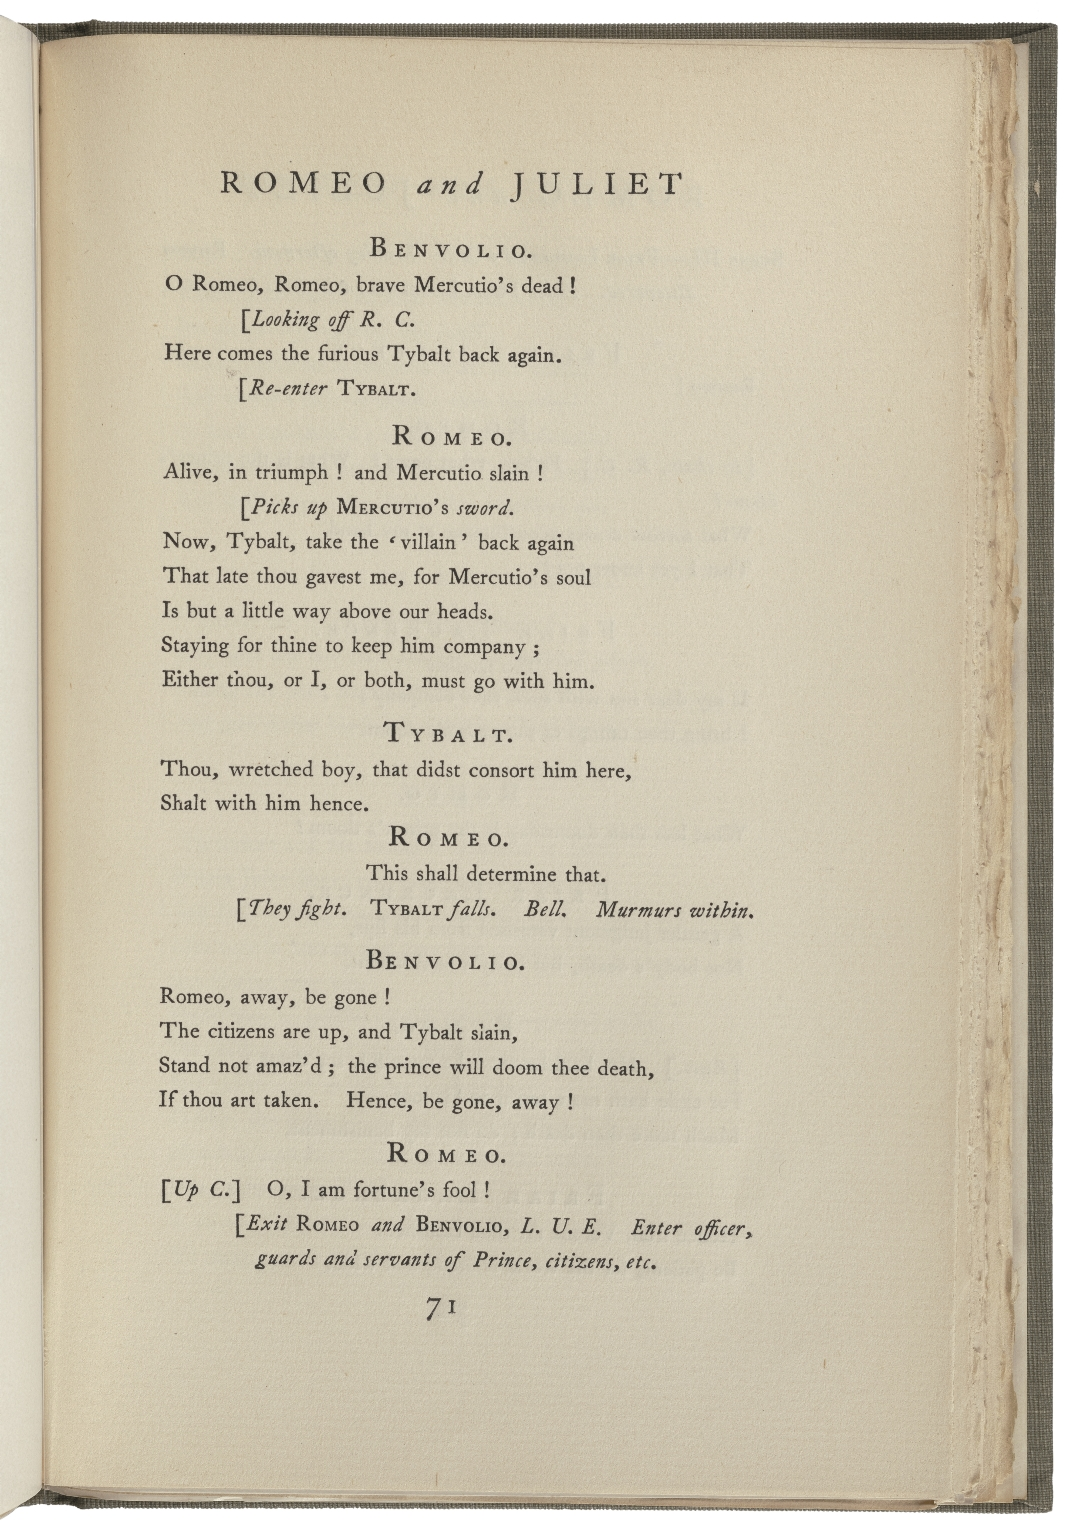 [Romeo and Juliet.] Maude Adams acting edition of Romeo and Juliet / by William Shakespeare ; with drawings by Ernest Haskell and C. Allan Gilbert ; published with the authorization of Charles Frohman.